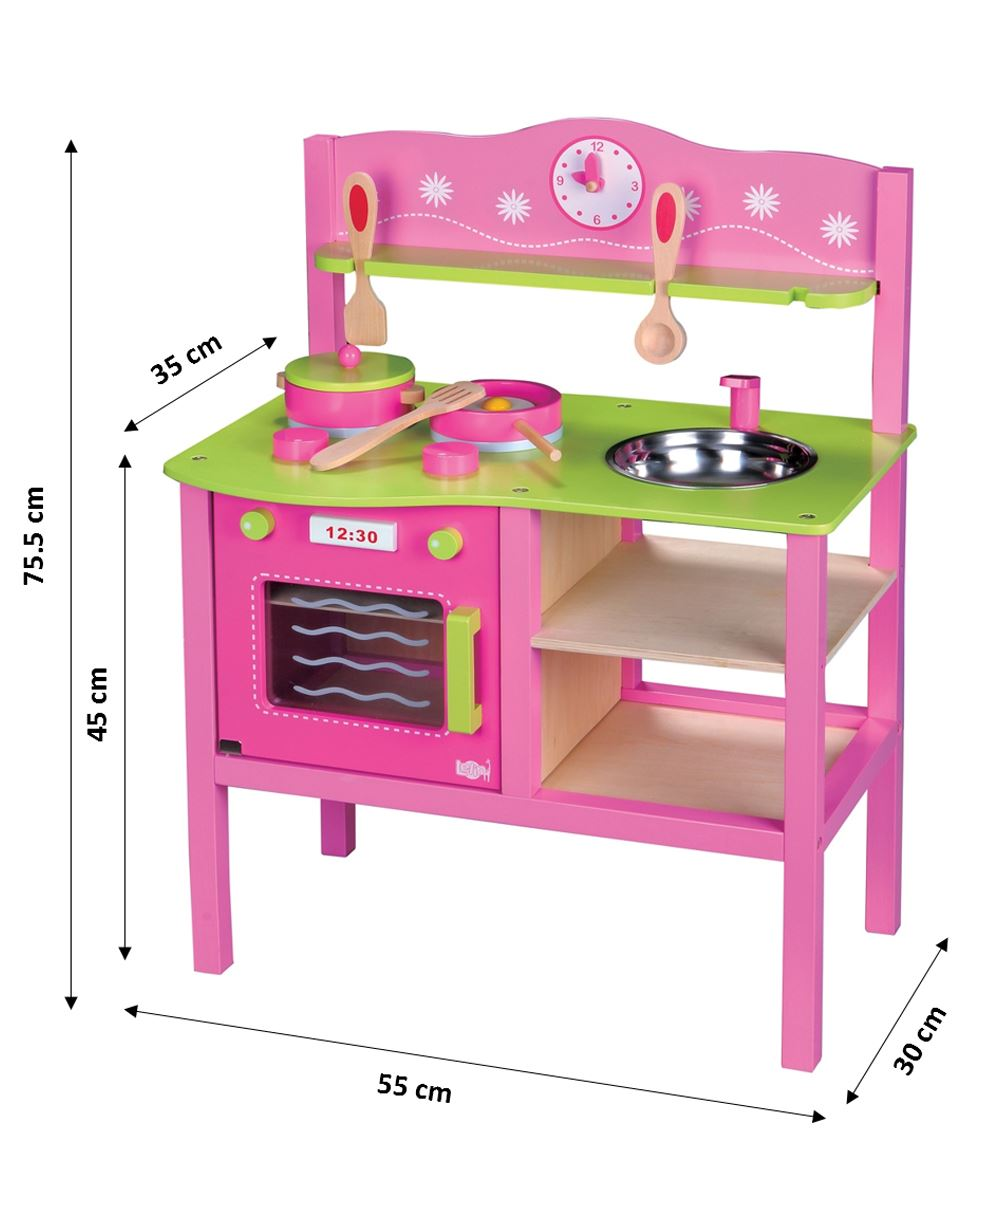 LELIN-WOODEN-WOOD-CHILDRENS-KIDS-PRETEND-PLAY-SAFFRON-KITCHEN-COOKING-OVEN-TOY thumbnail 13